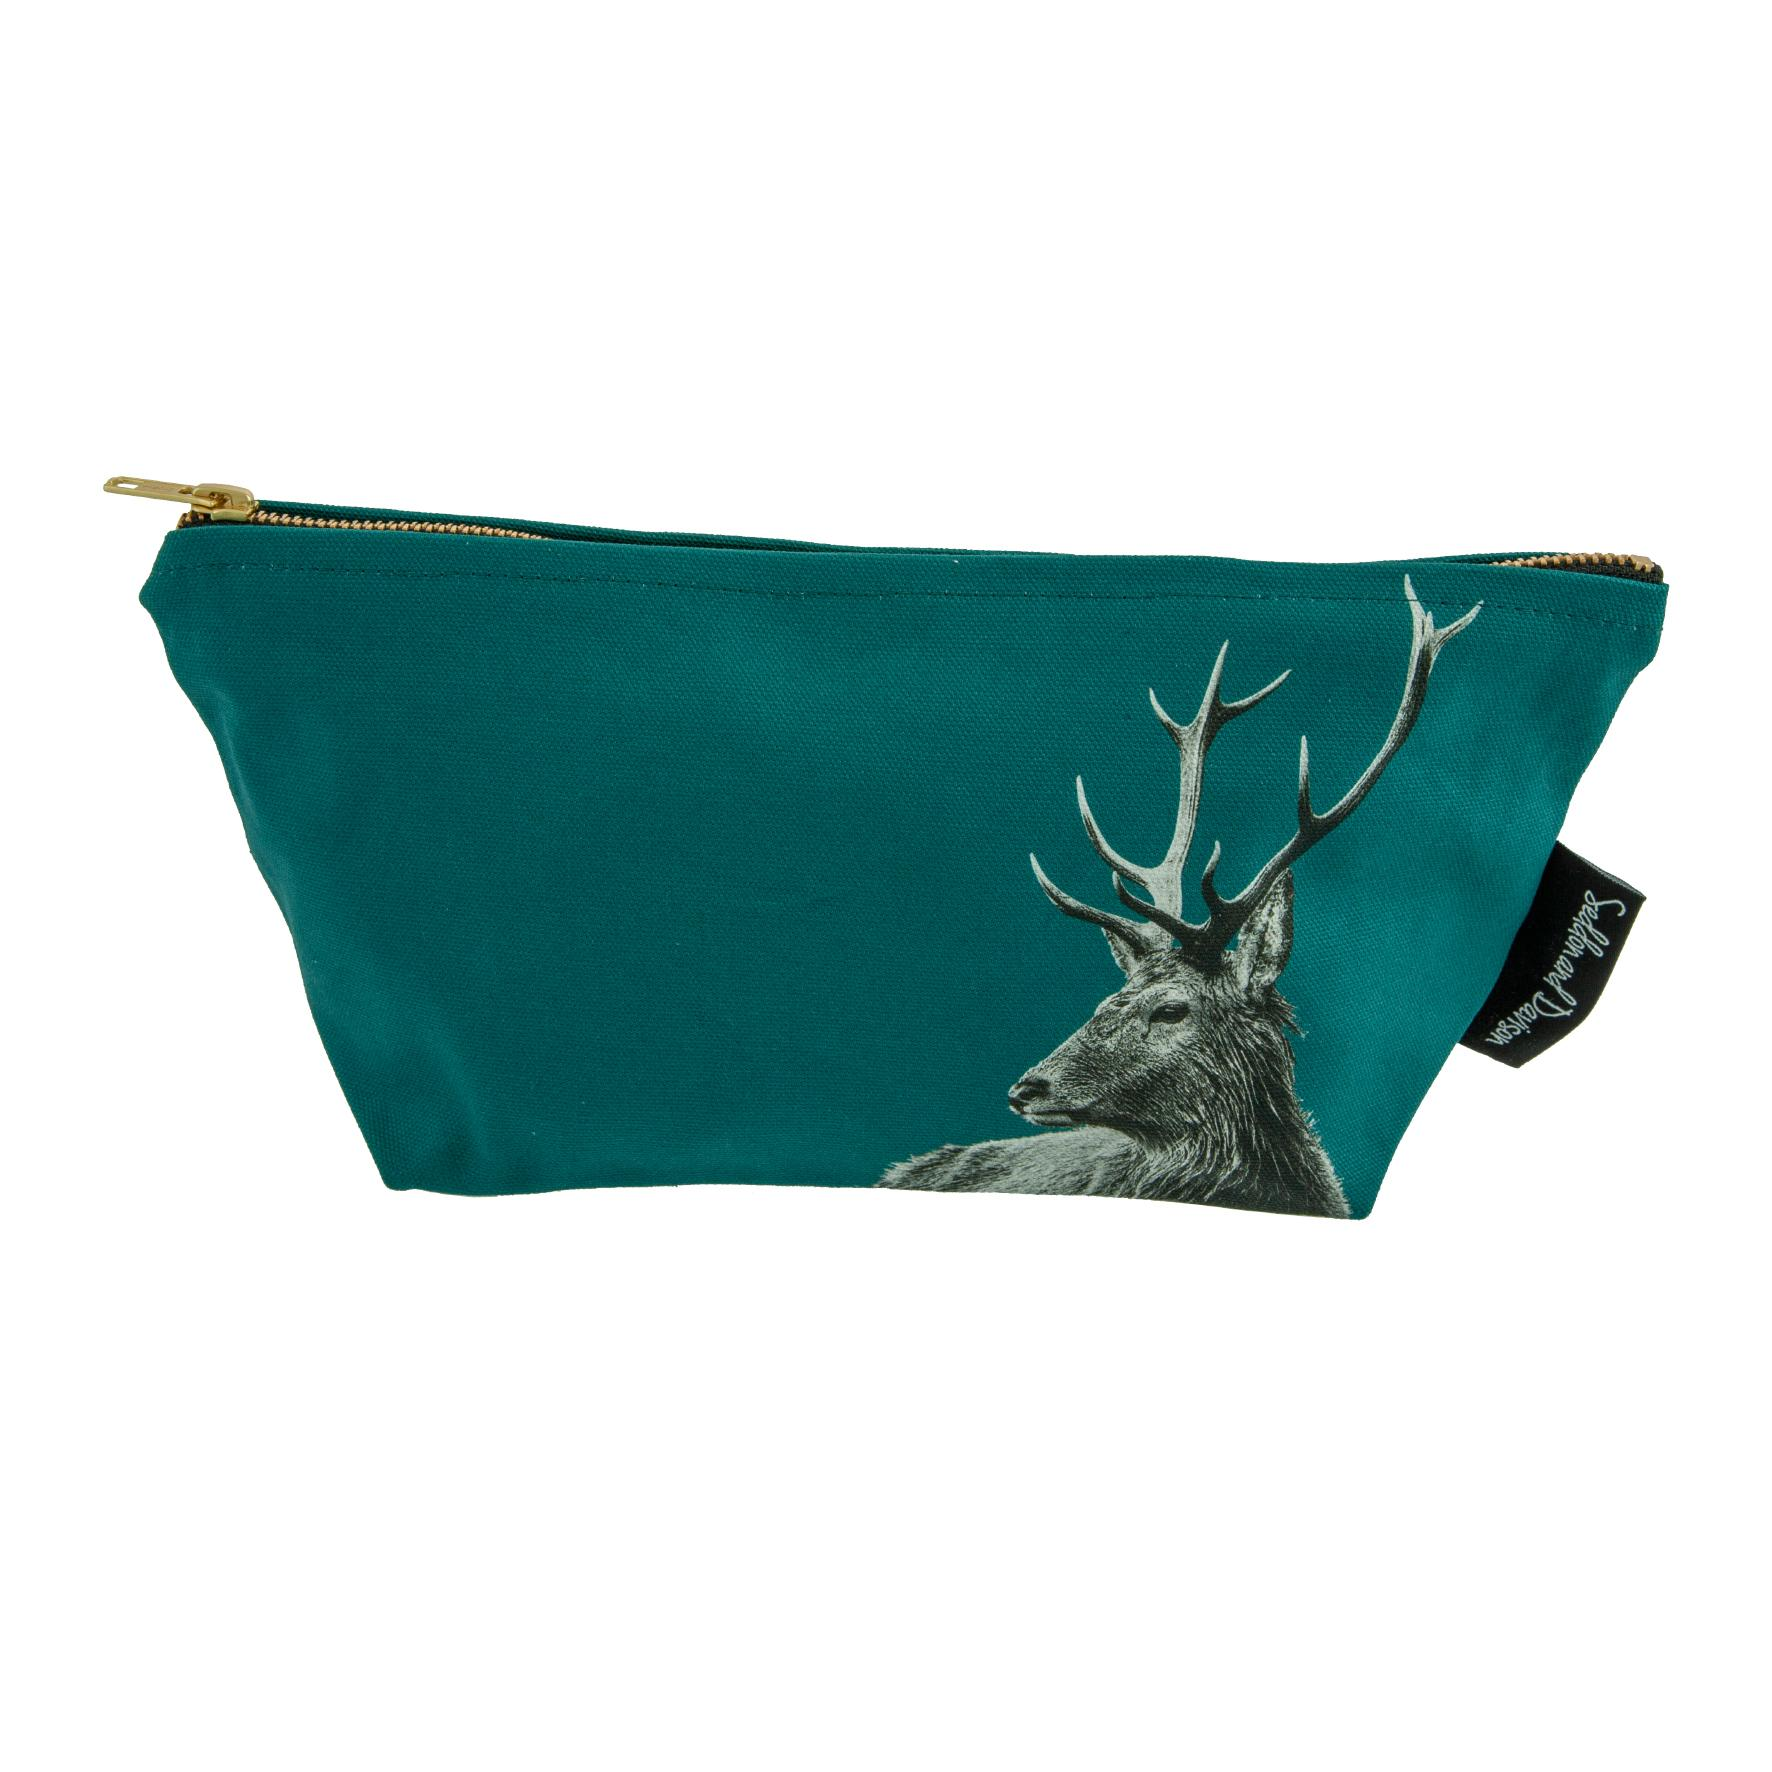 Highland Stag Wash Bag on Teal